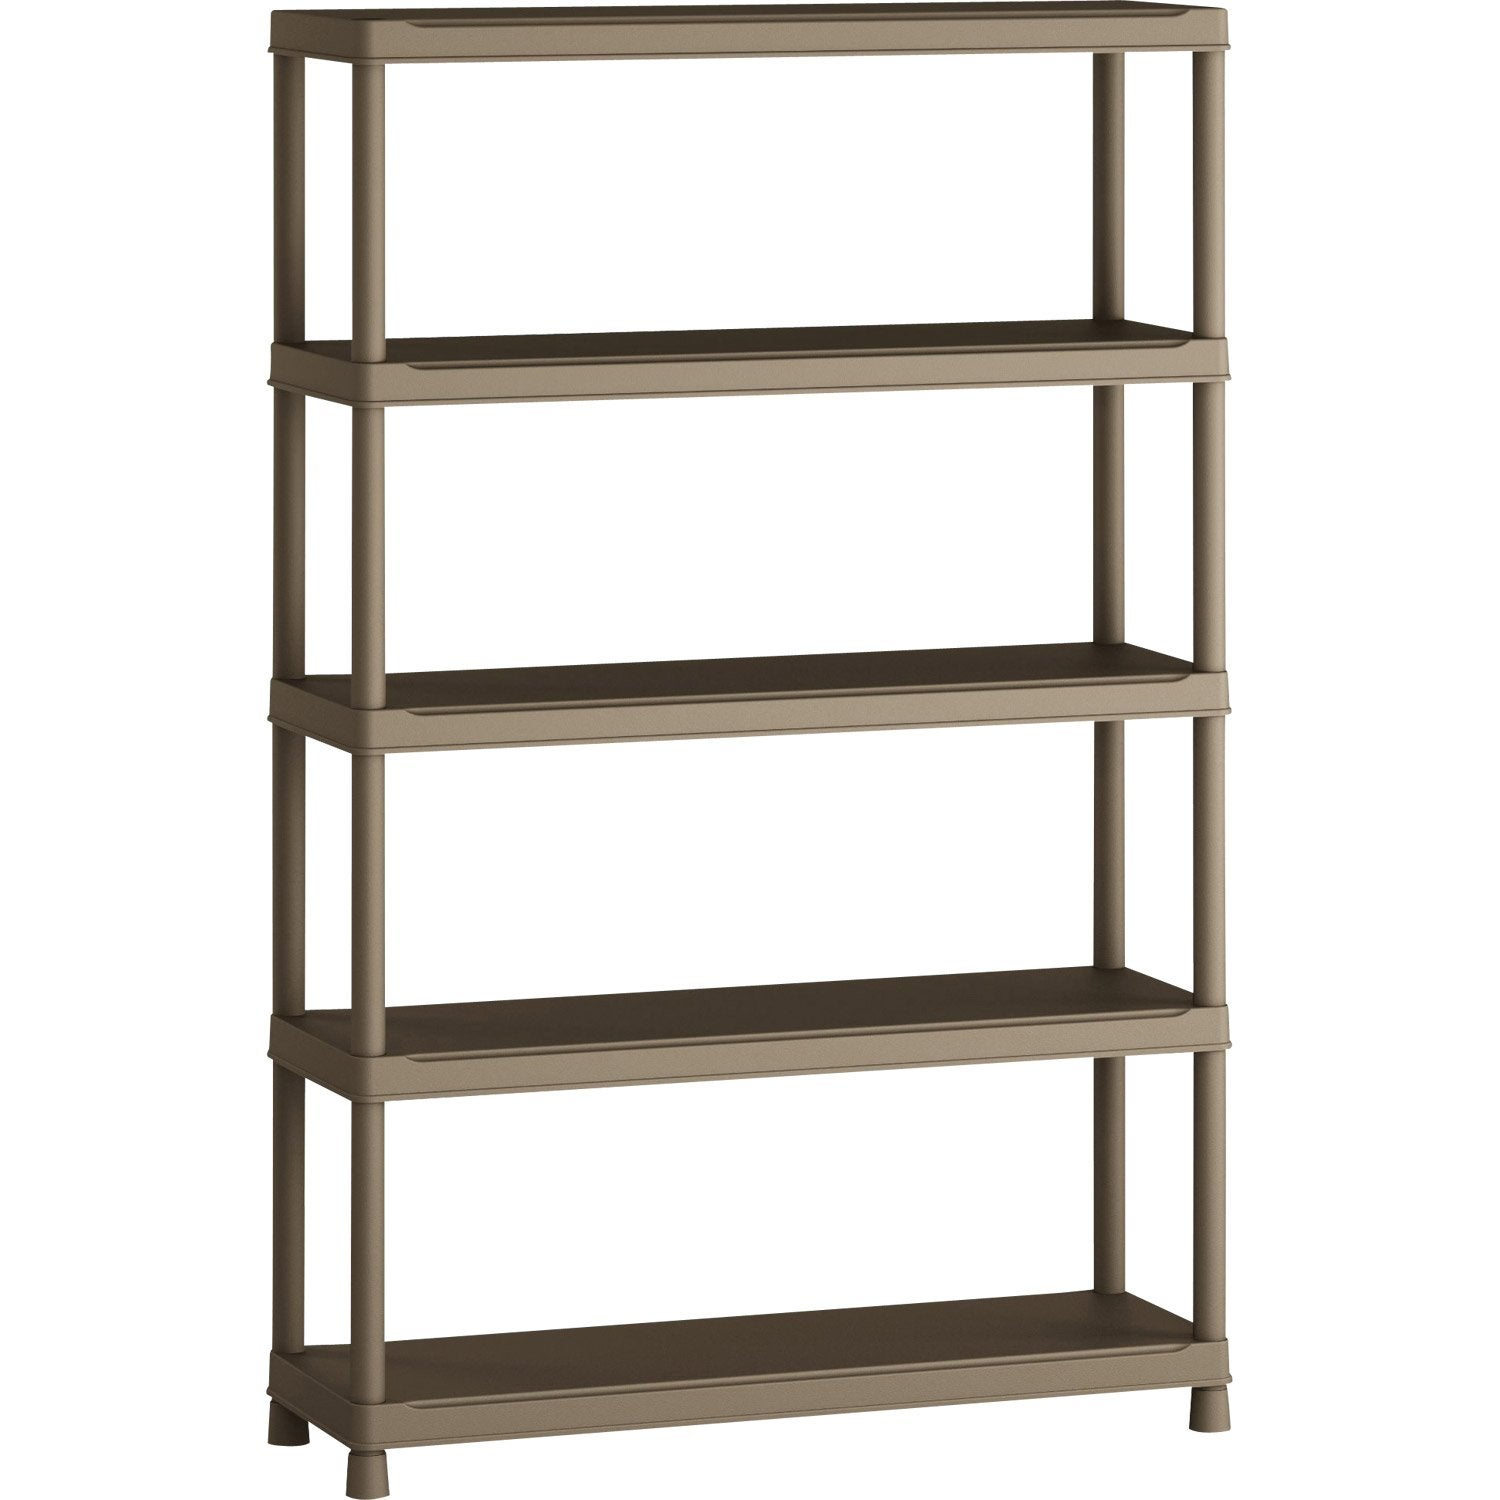 Etagere Bois Brico Depot : Etag?re en r?sine 5 tablettes SPACEO, H181xL120xP40 cm Leroy